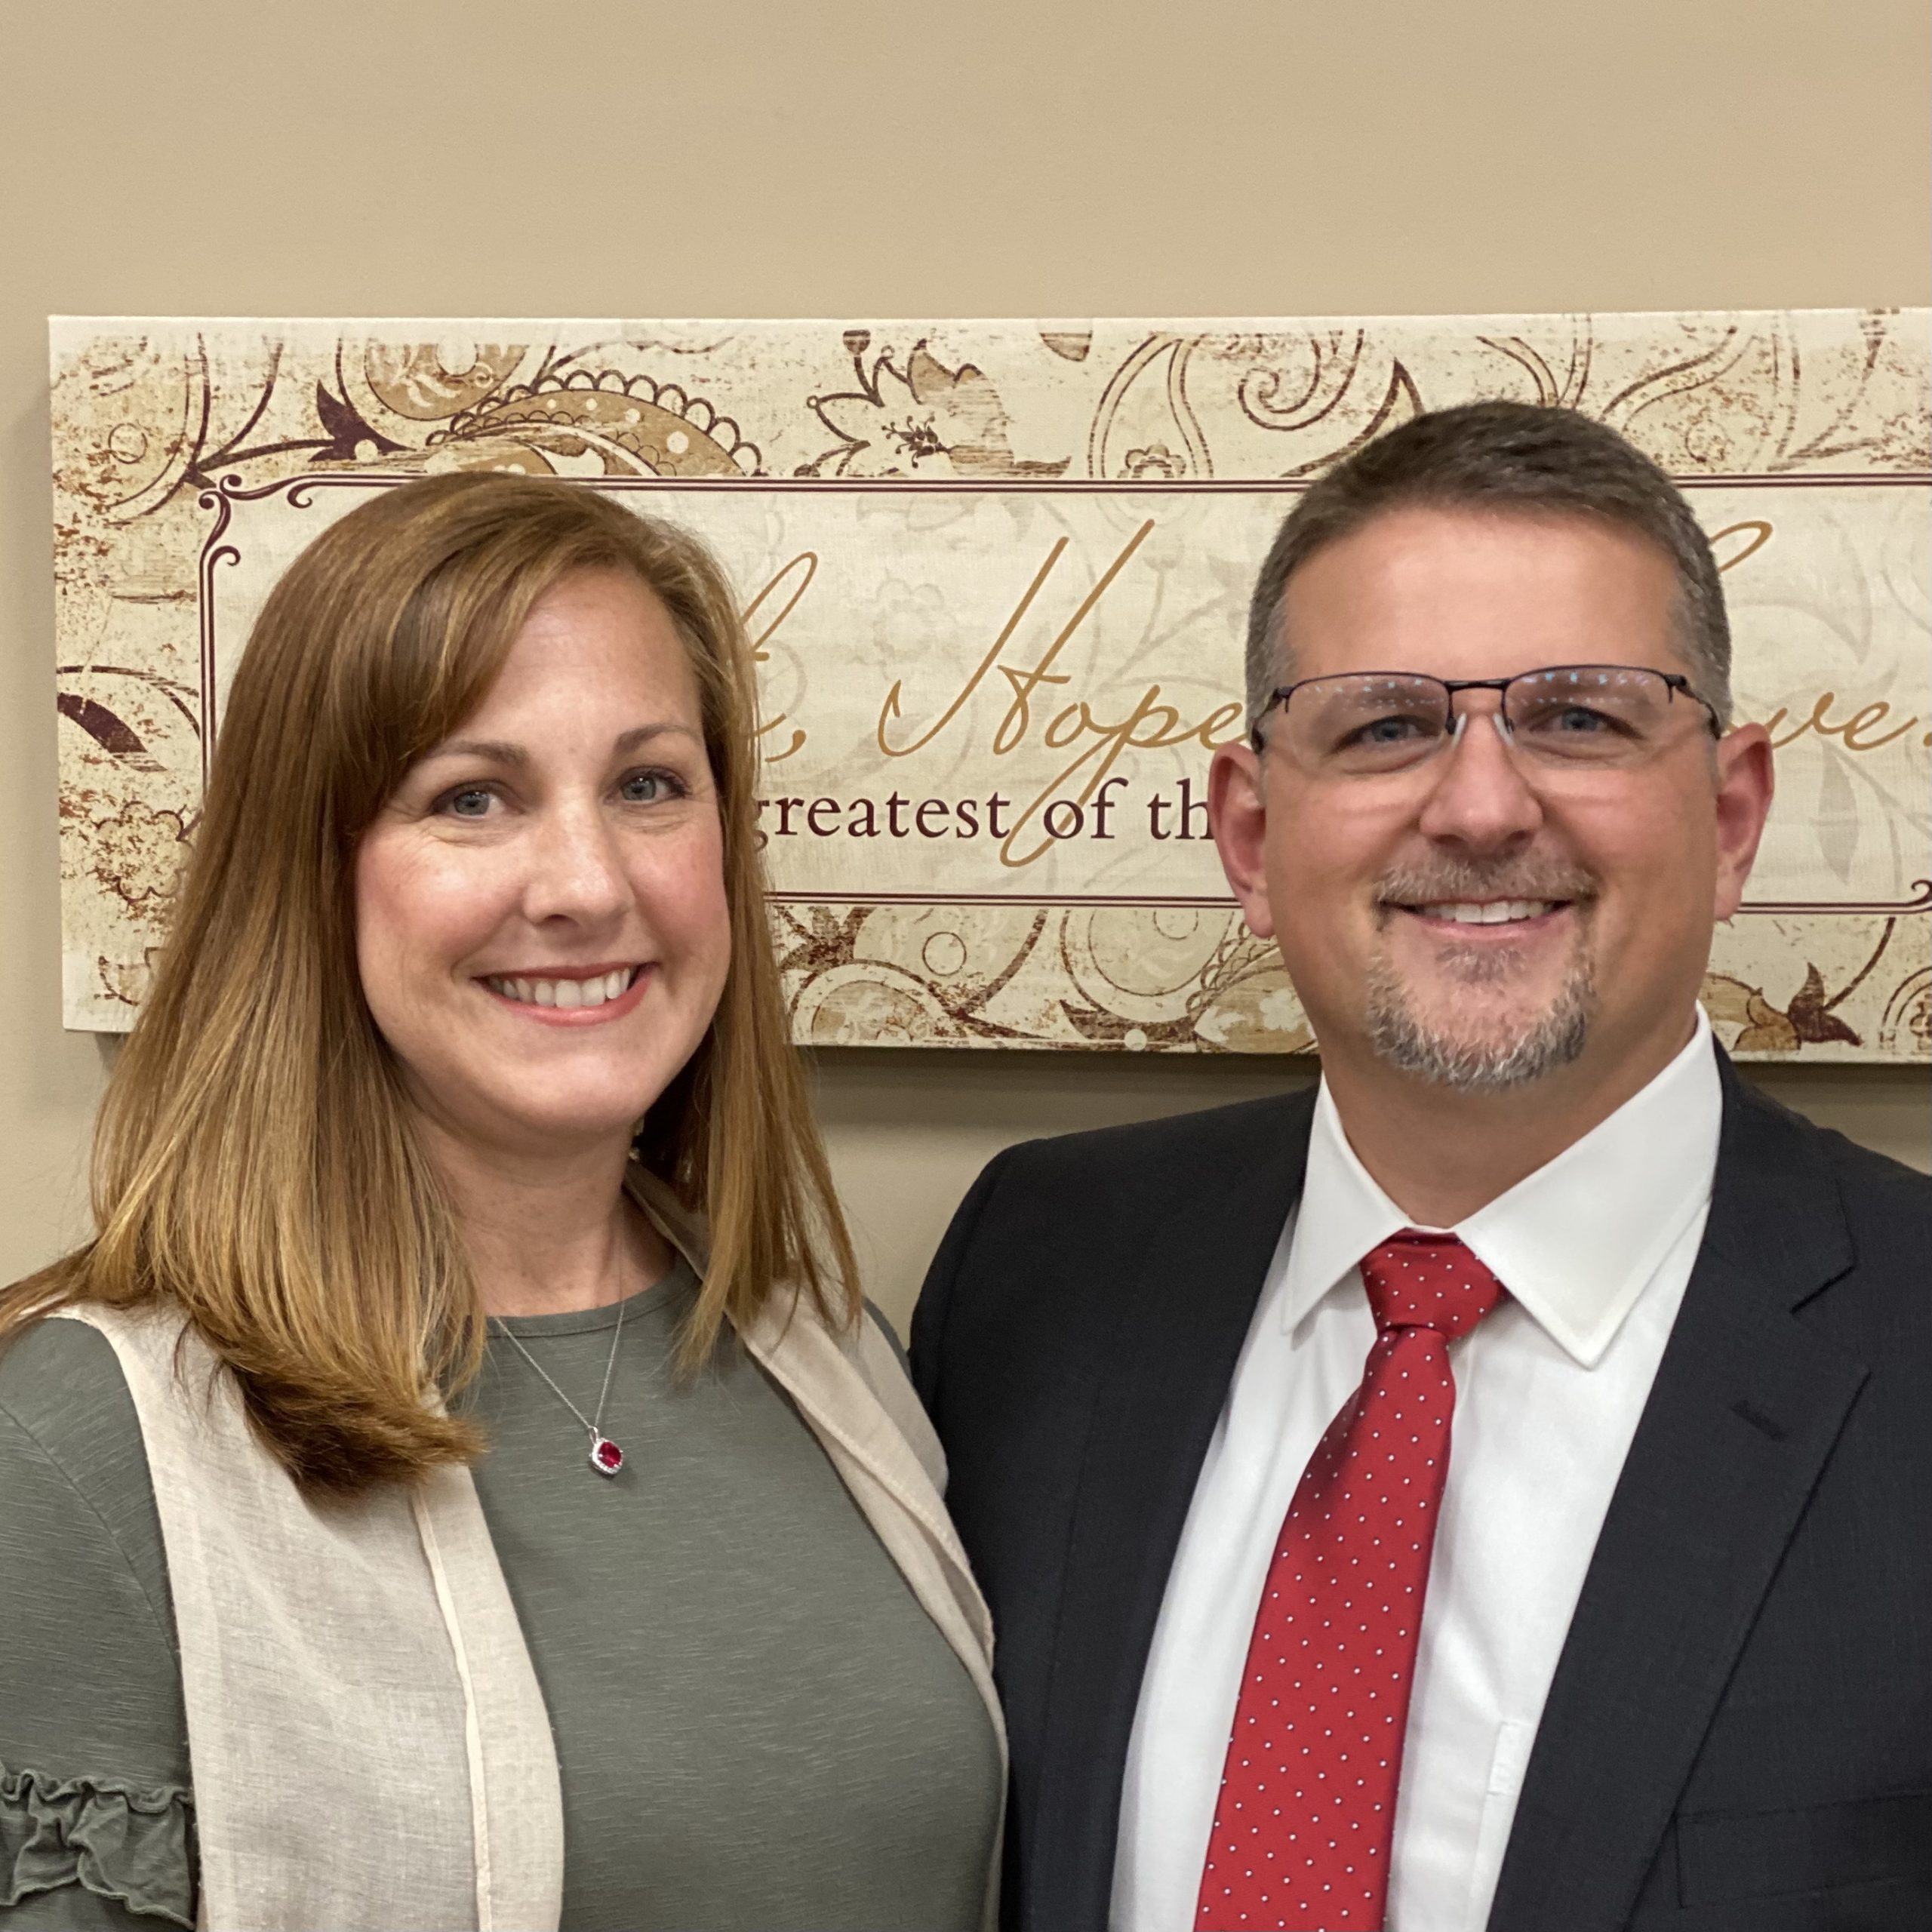 Senior Pastor Zad Tomberlin and wife Tory